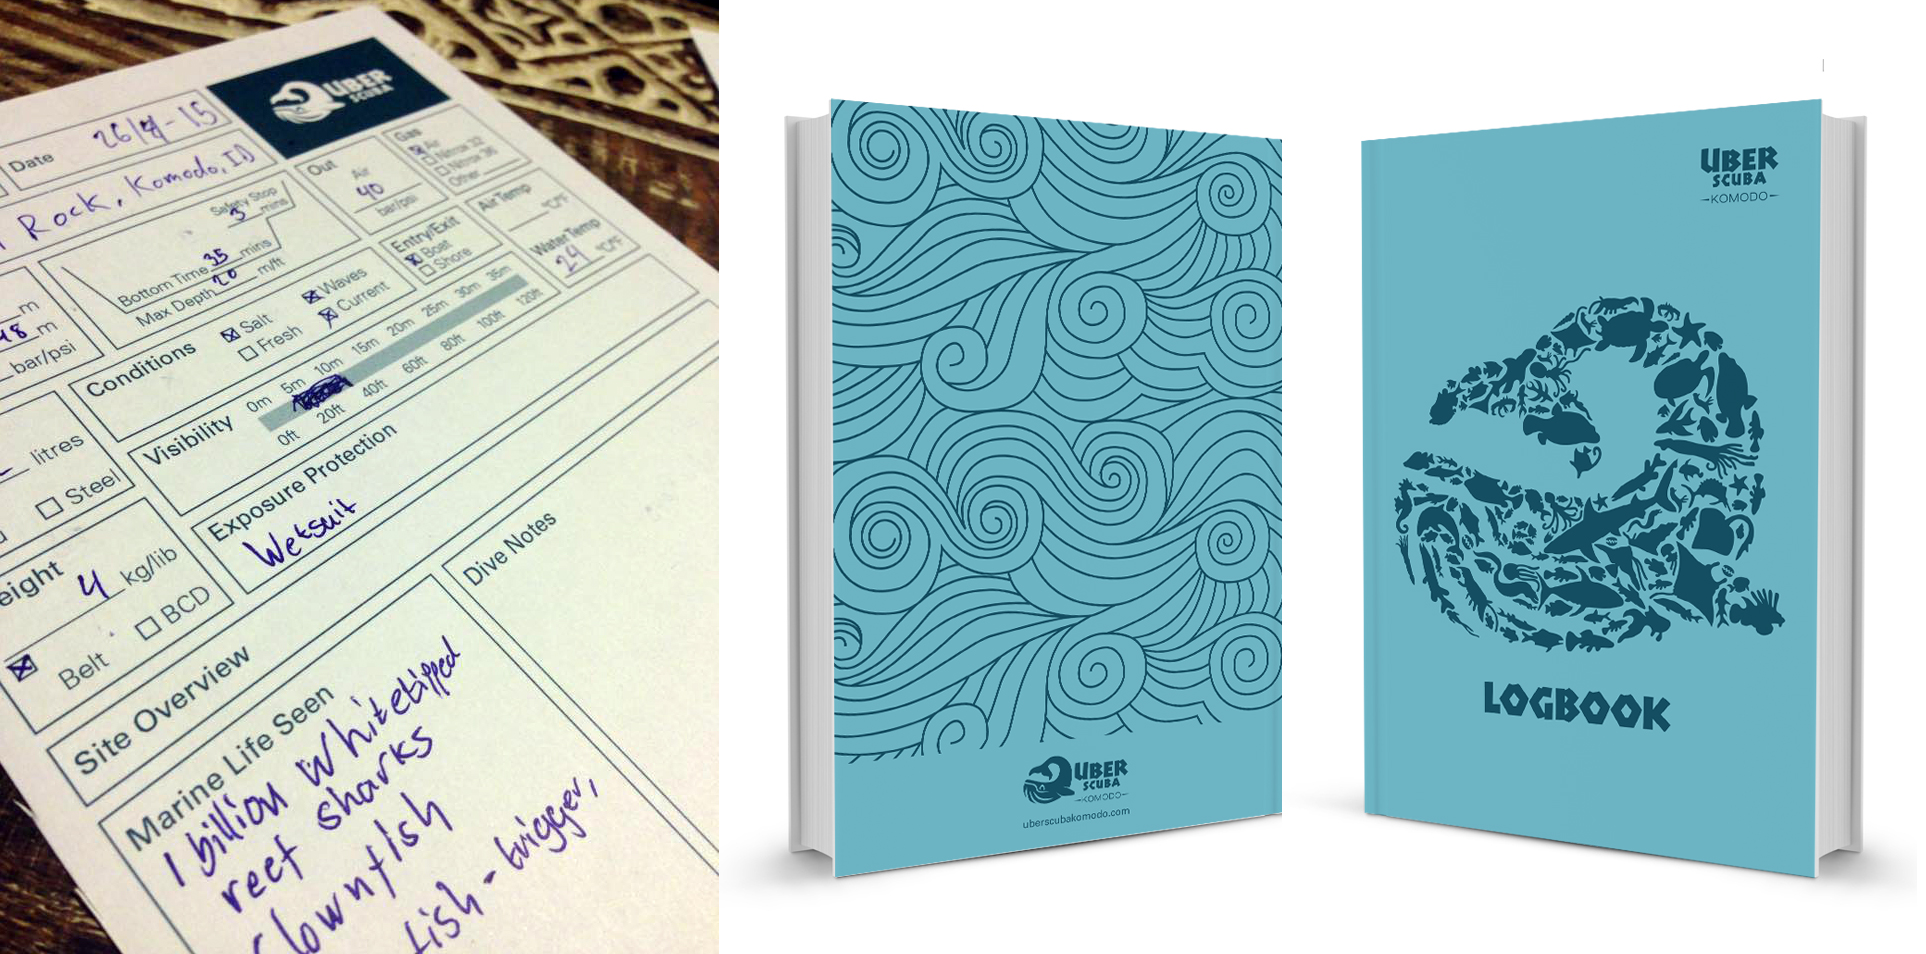 scuba diving logbook design by 50bar scuba design